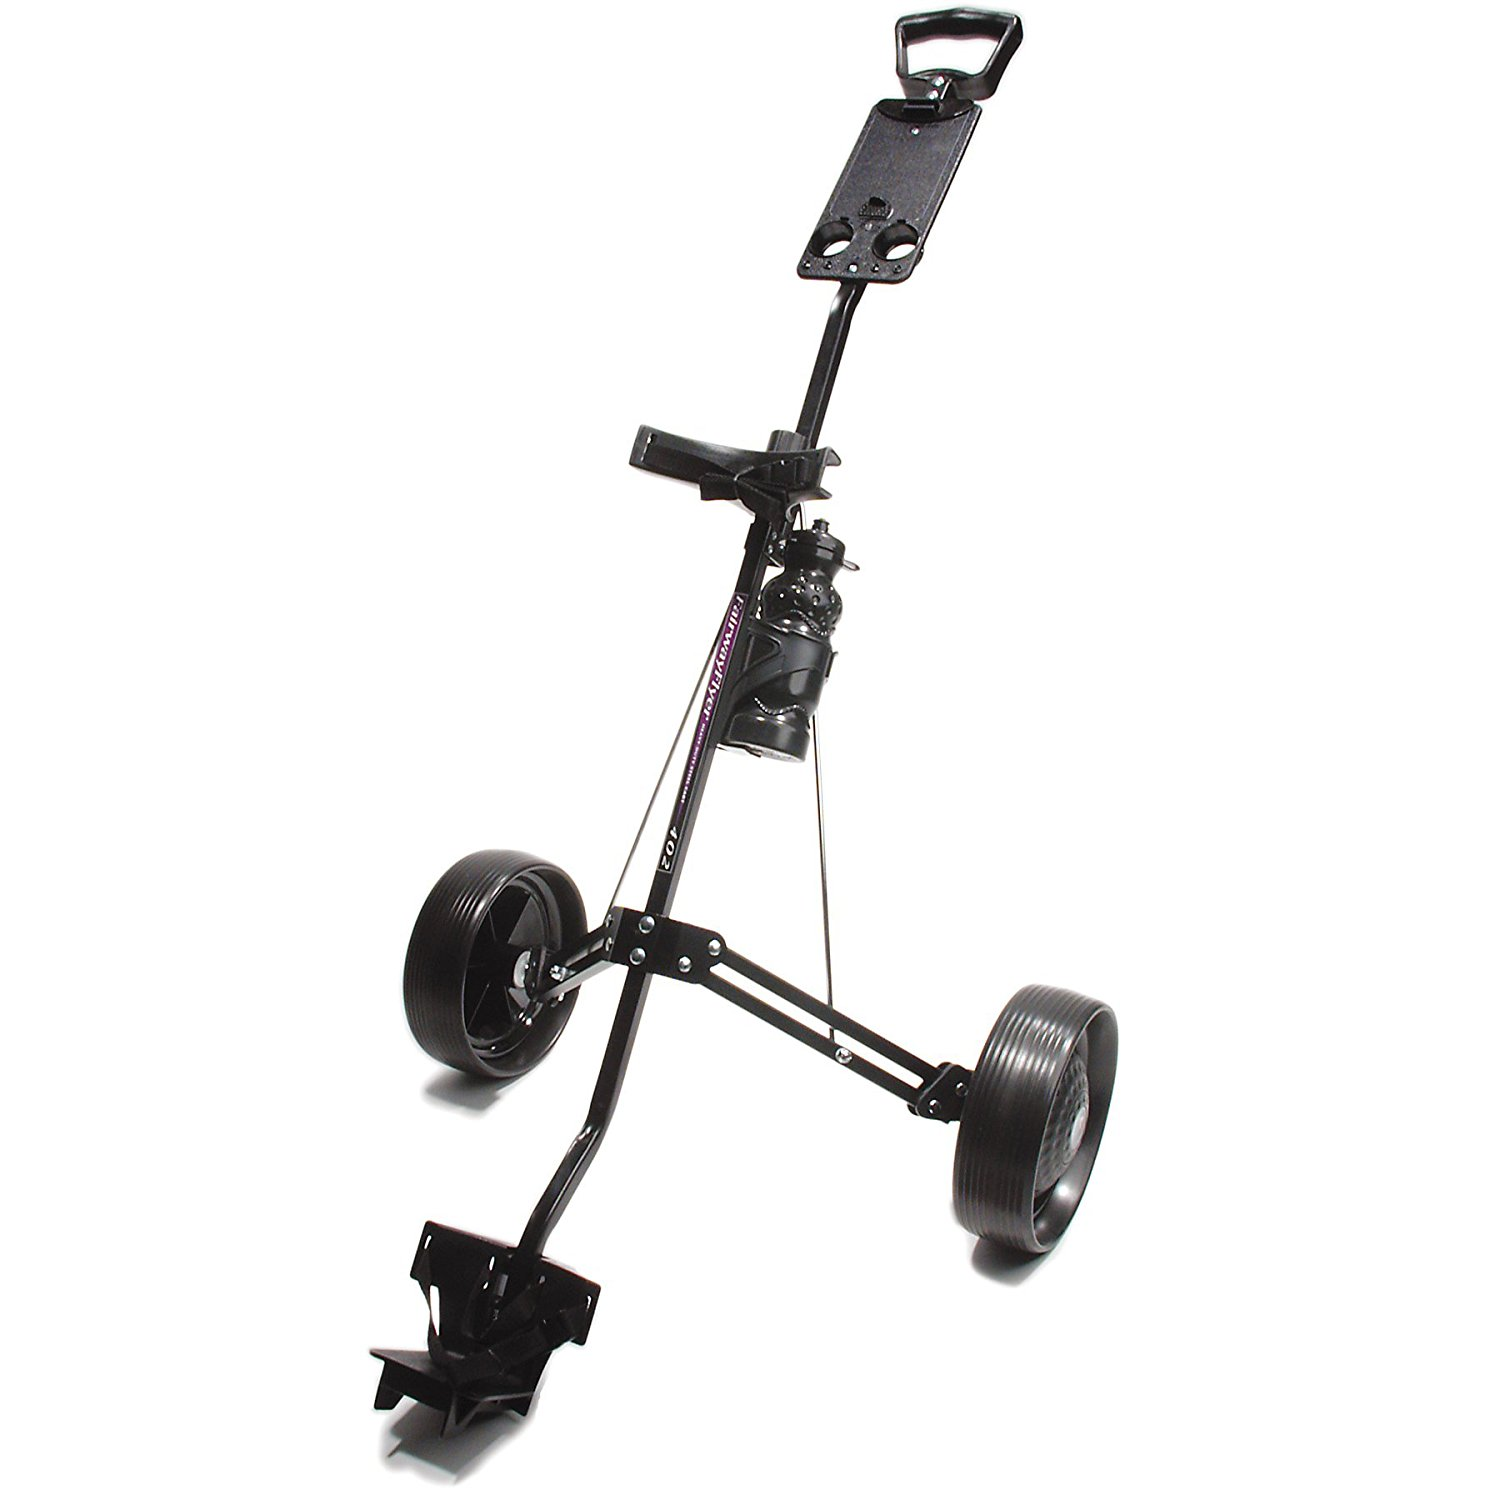 Proactive Sports Golf Carts / Trolleys